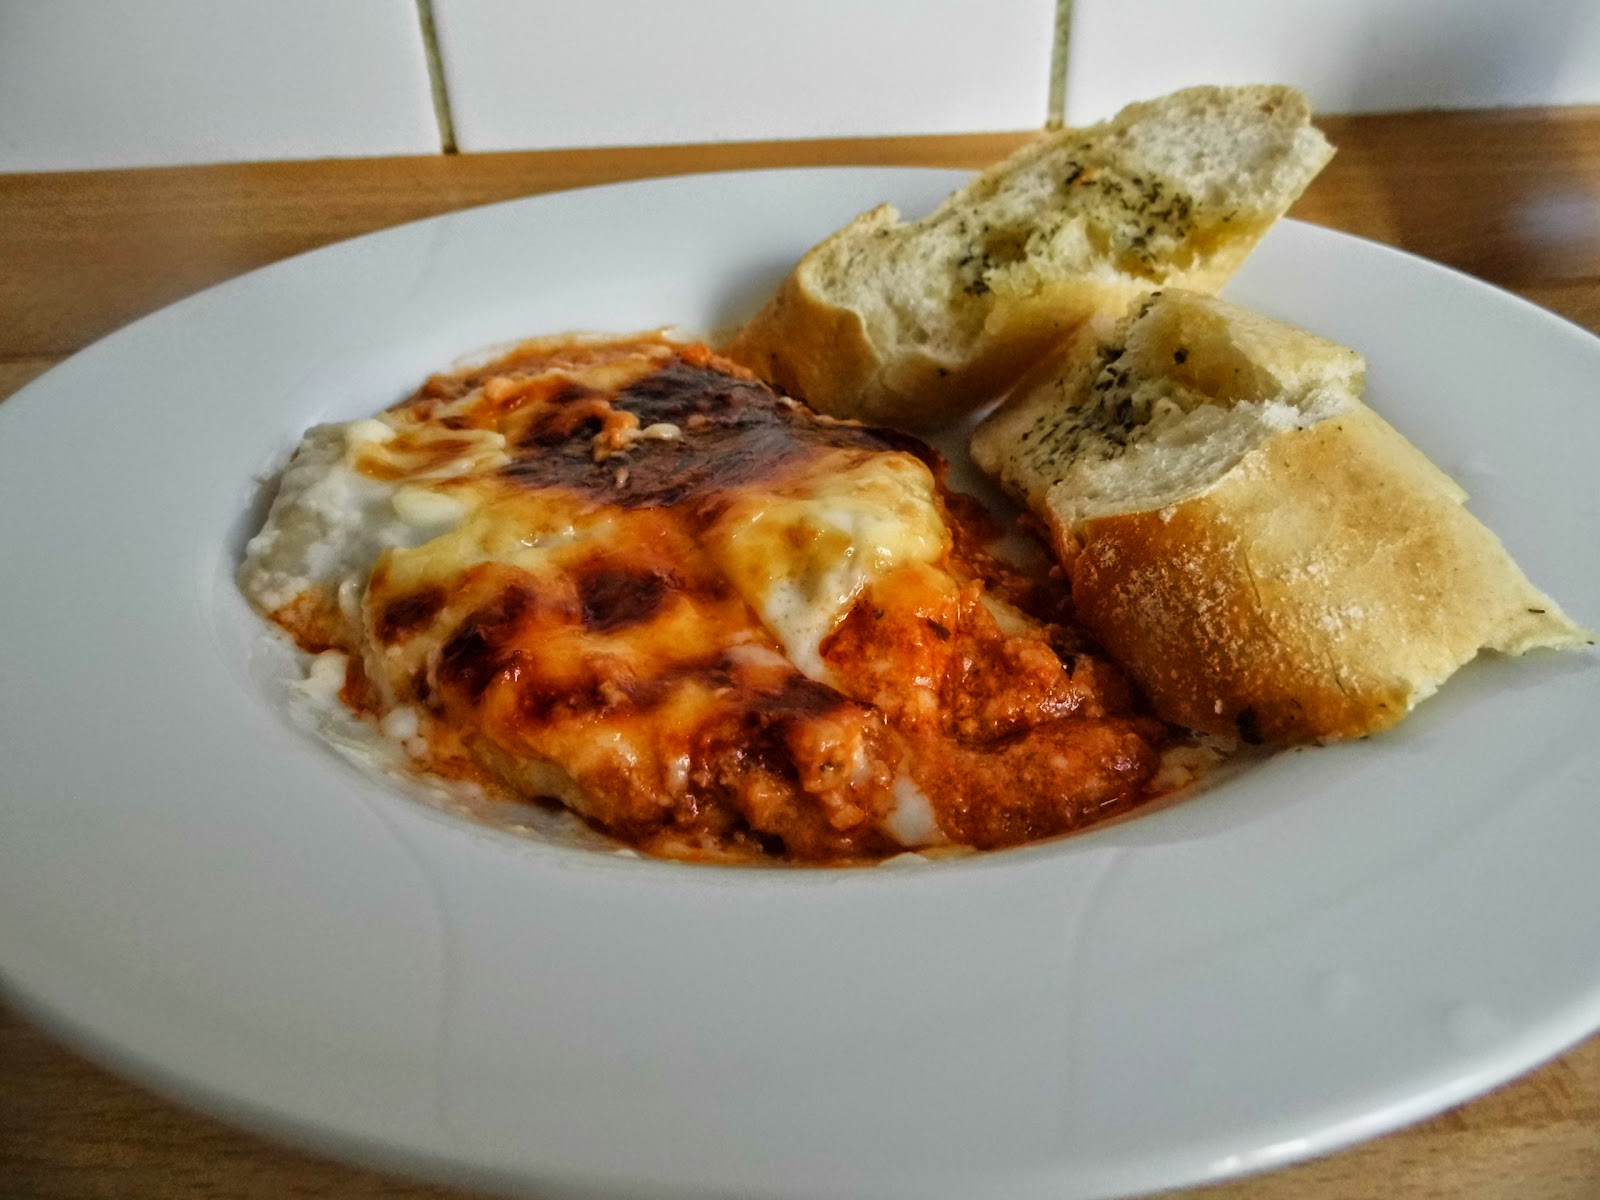 Lasagna for lunch